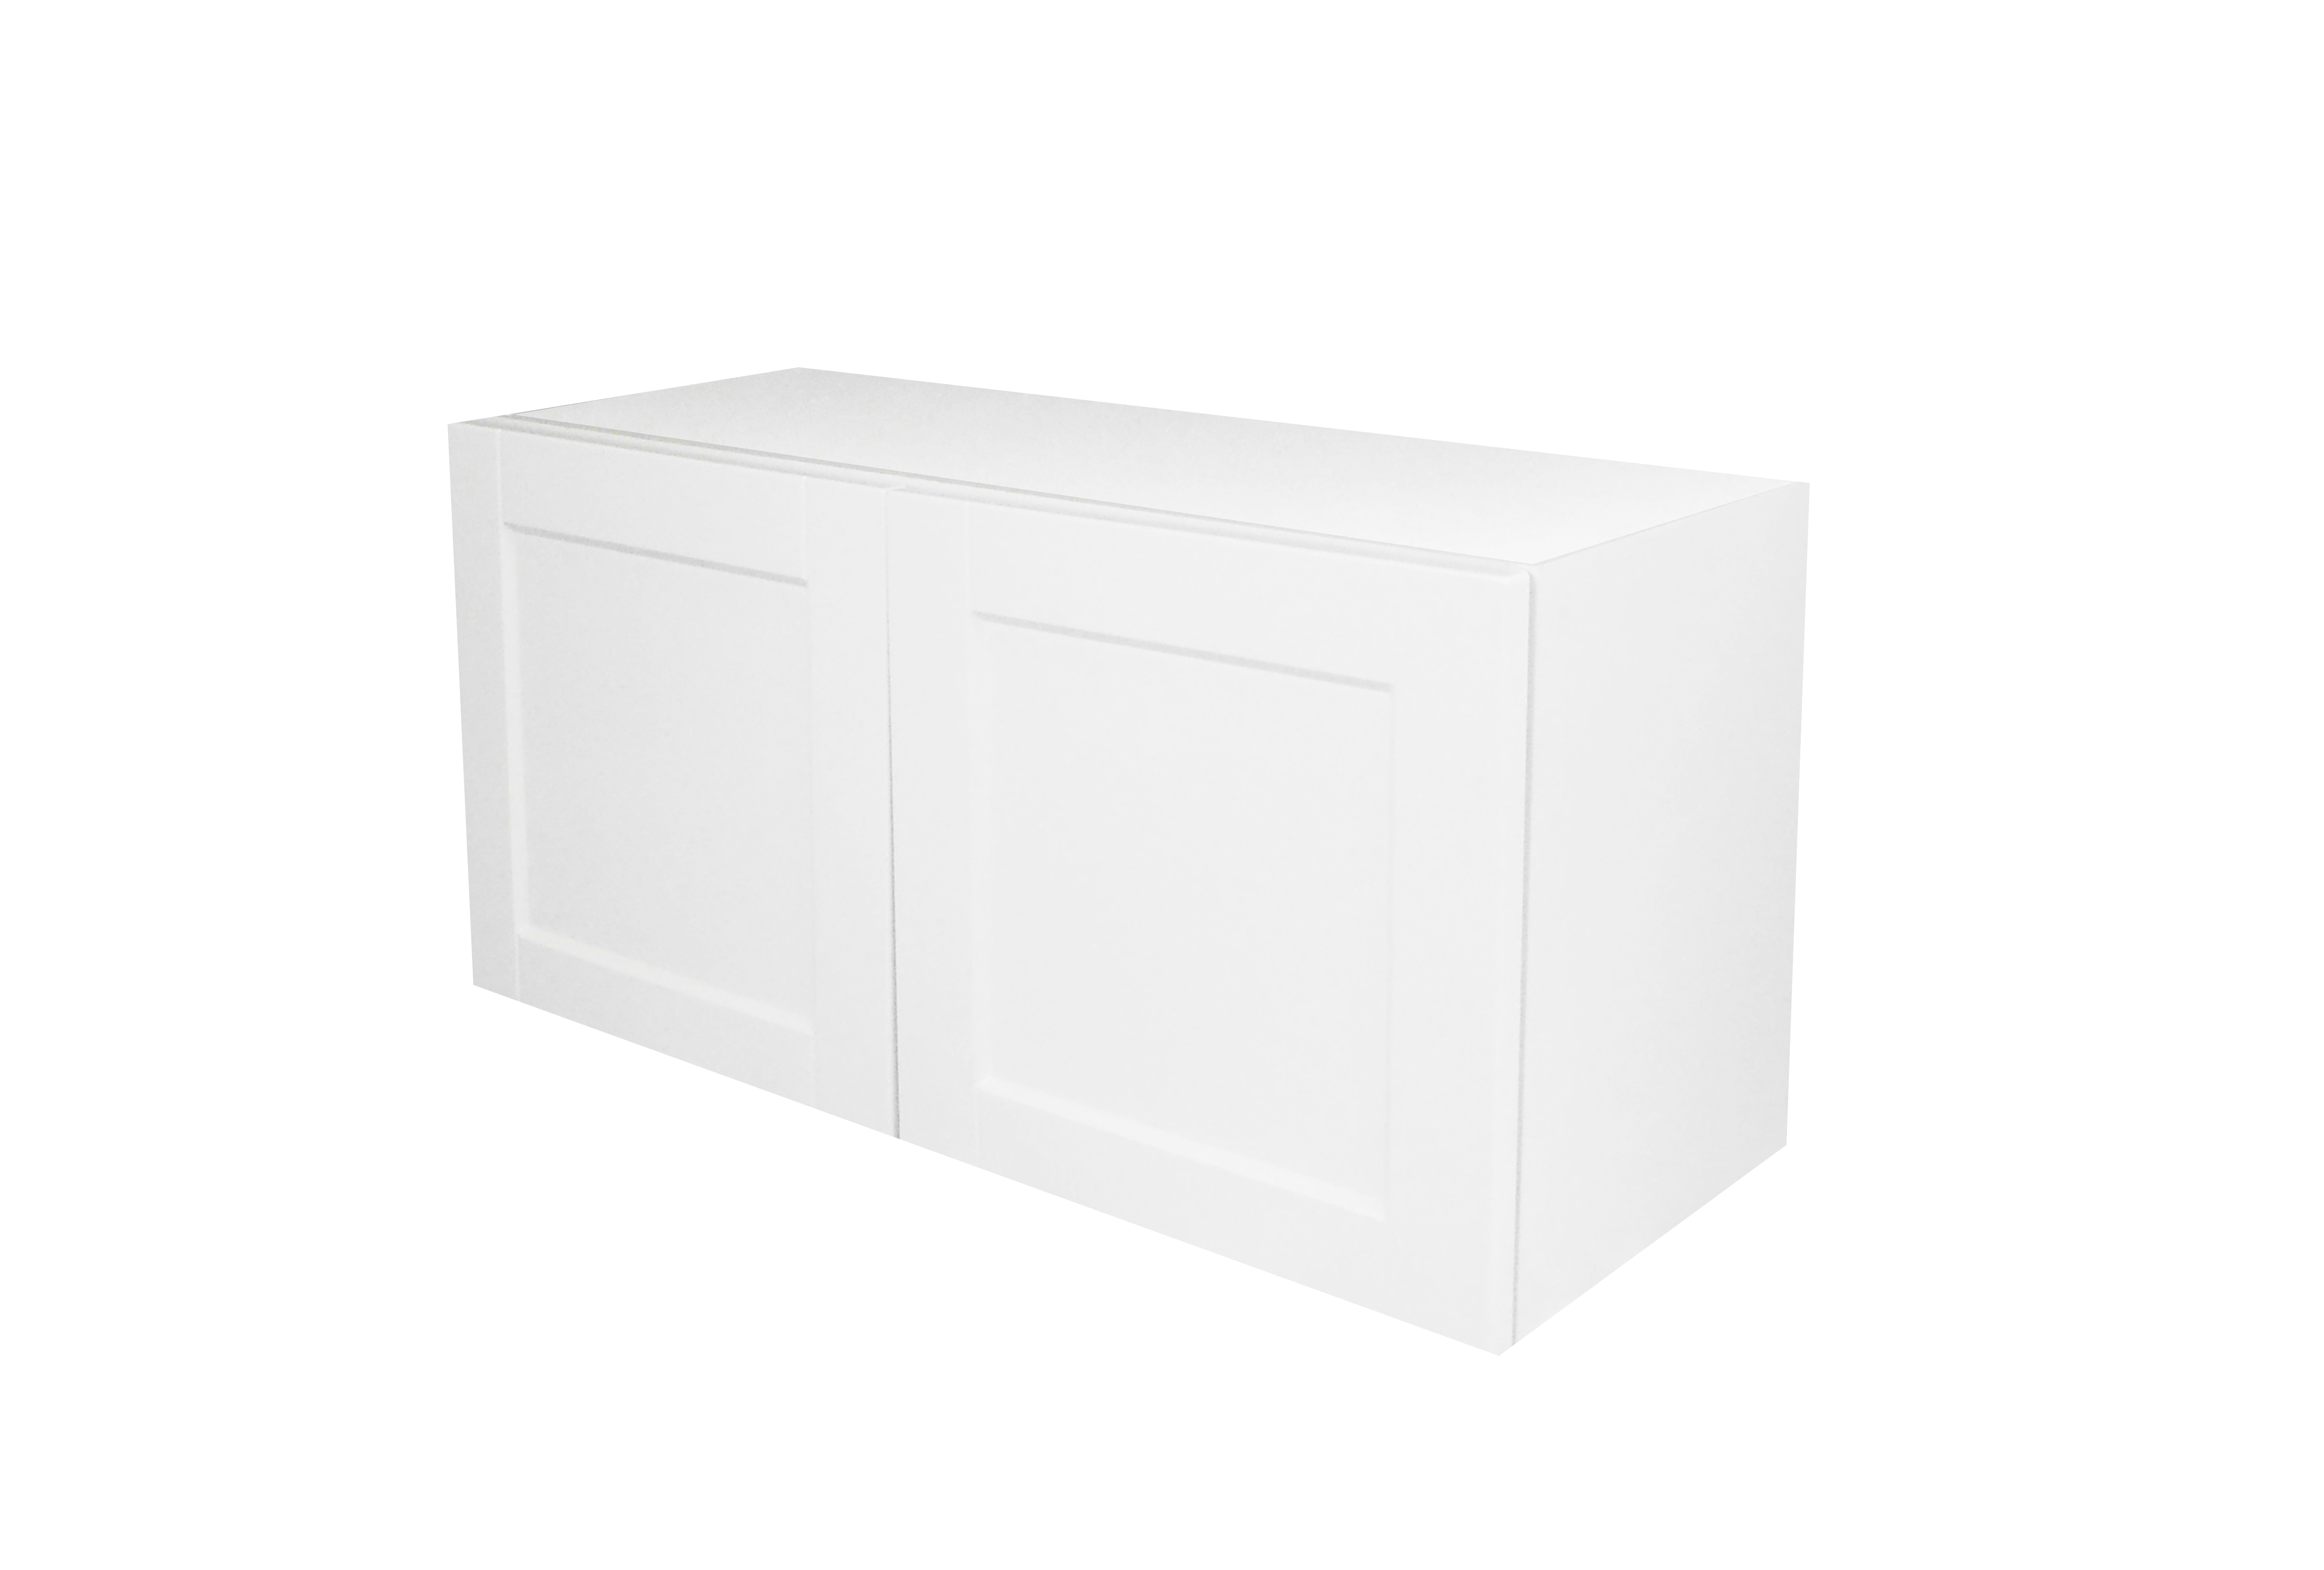 Appliance Wall Cabinet with 2 Doors / Flat Panel White / 36x15 Solaire White 0